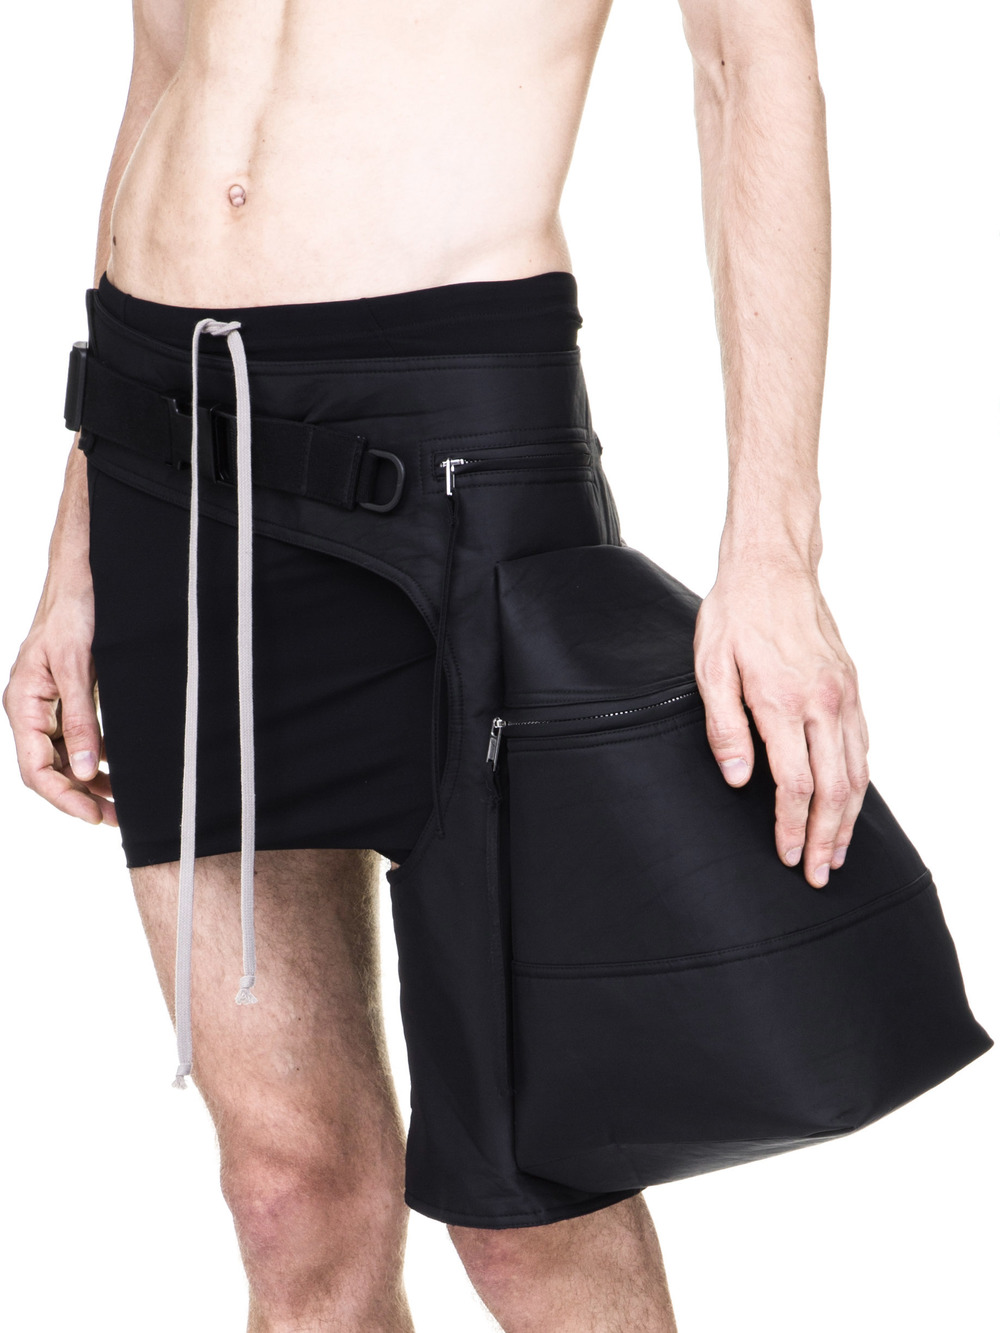 RICK OWENS OFF-THE-RUNWAY CARGO CHAP BAG IN BLACK TECH CANVAS